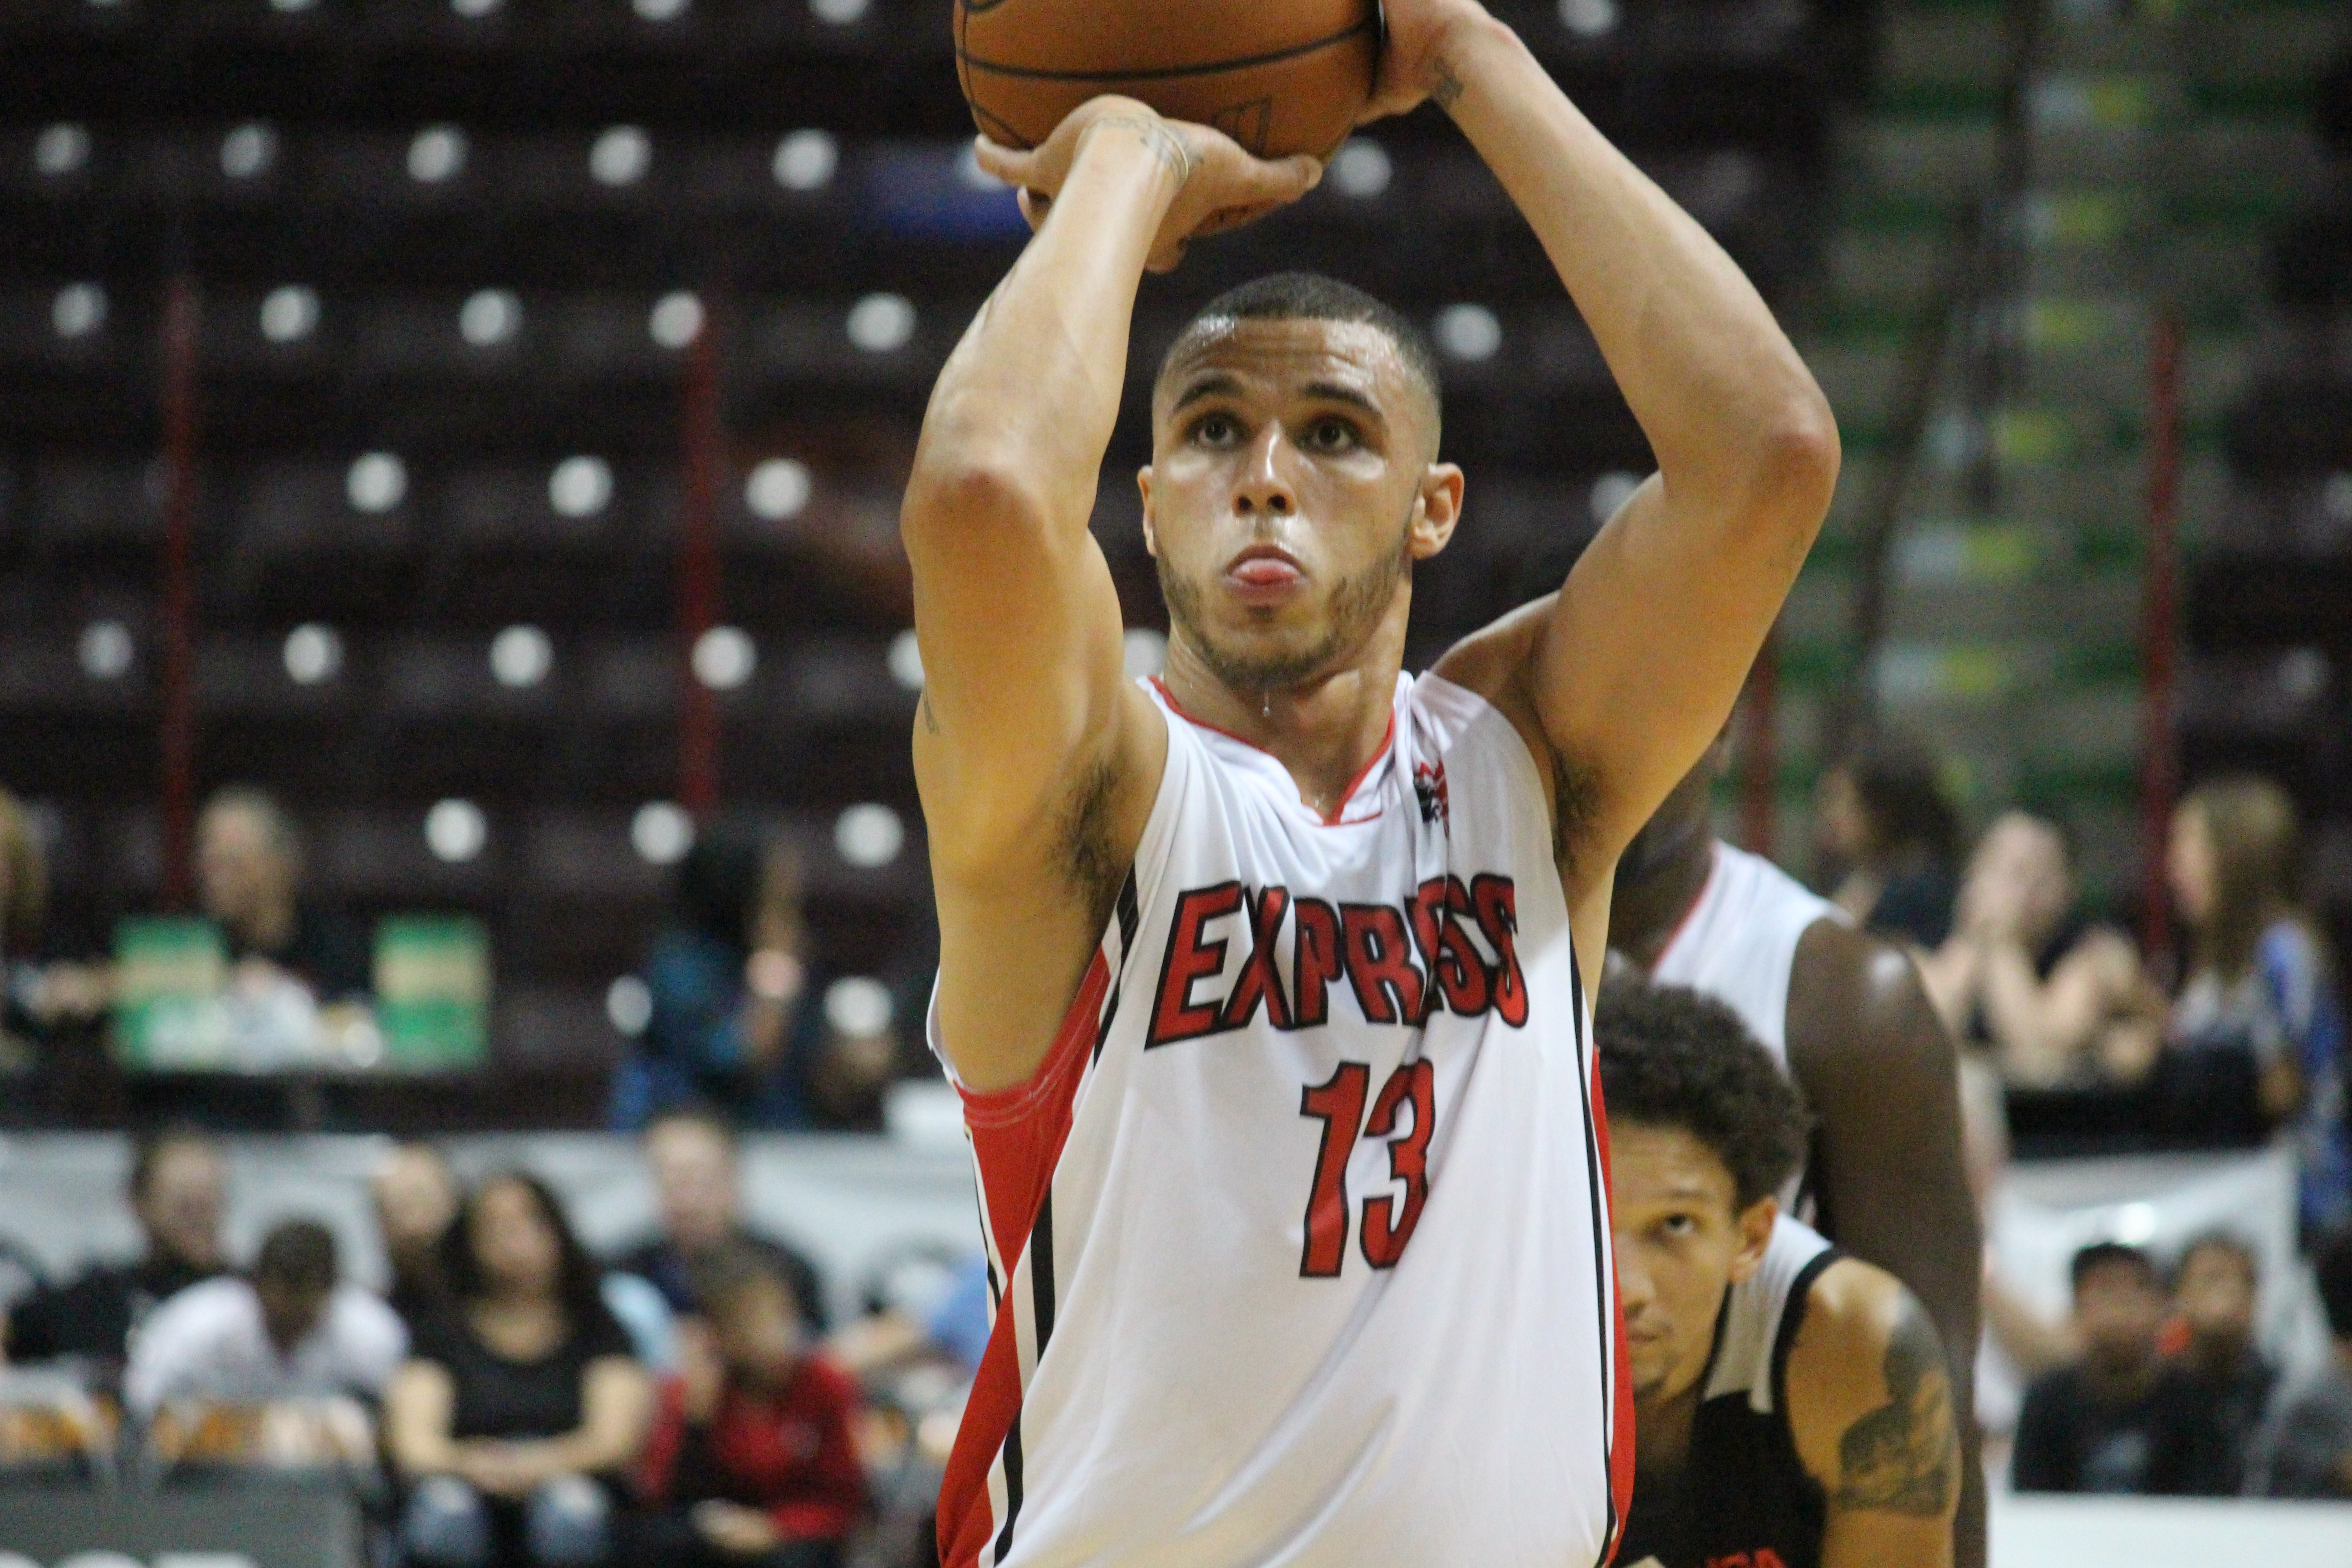 Express Fall 89-88 To A's